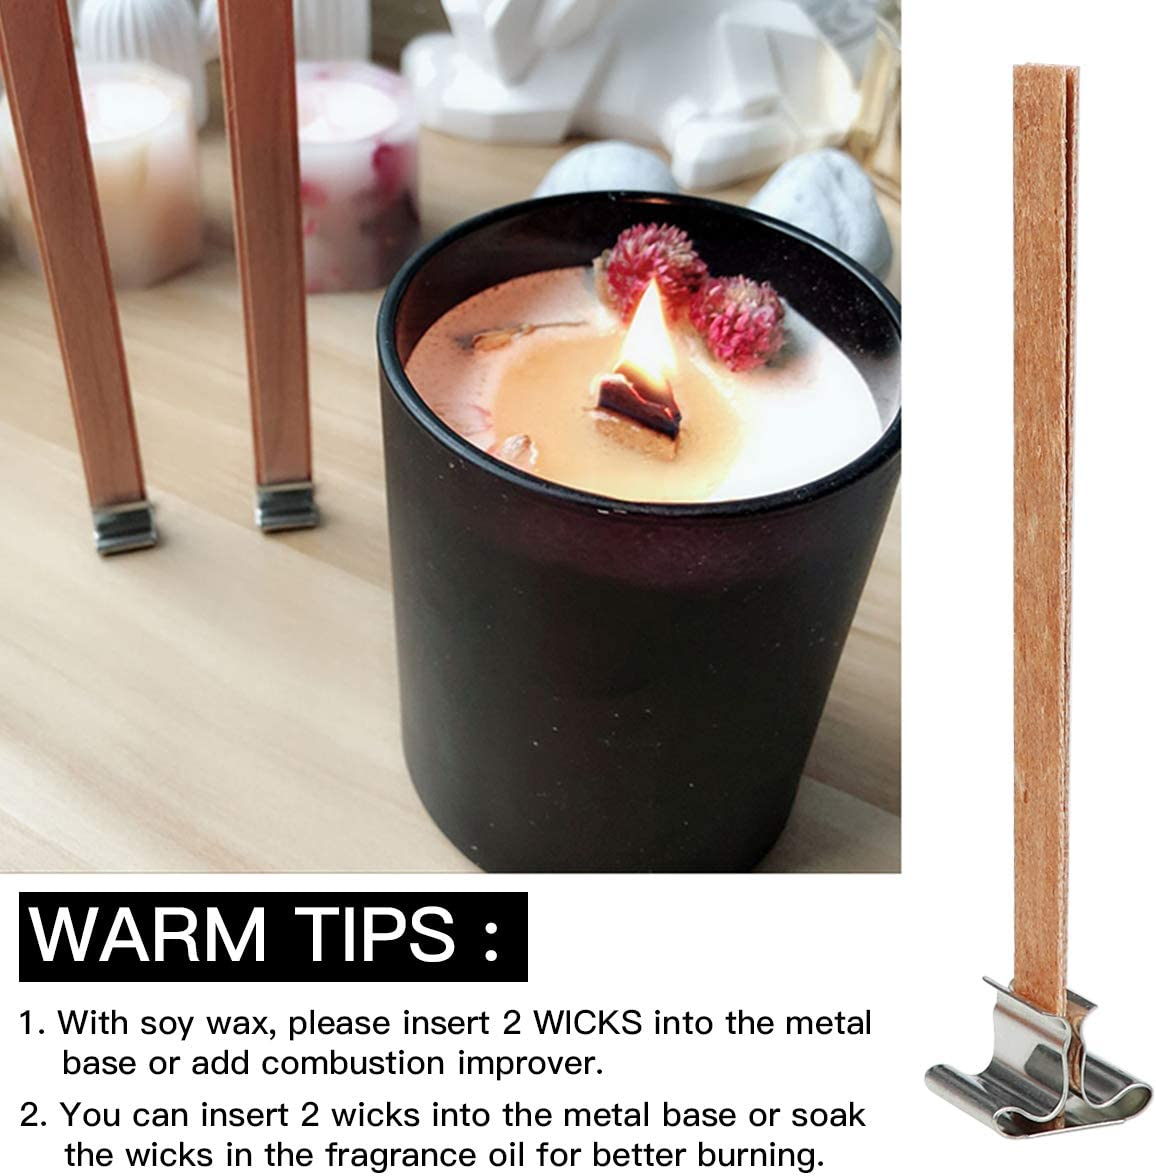 YOLUFER 50 PCS 2.35 x 0.25 Inch Candle Wicks with Iron Stand,Smokeless,Natural Environmentally Friendly Candle Cores for DIY Candle Making Craft